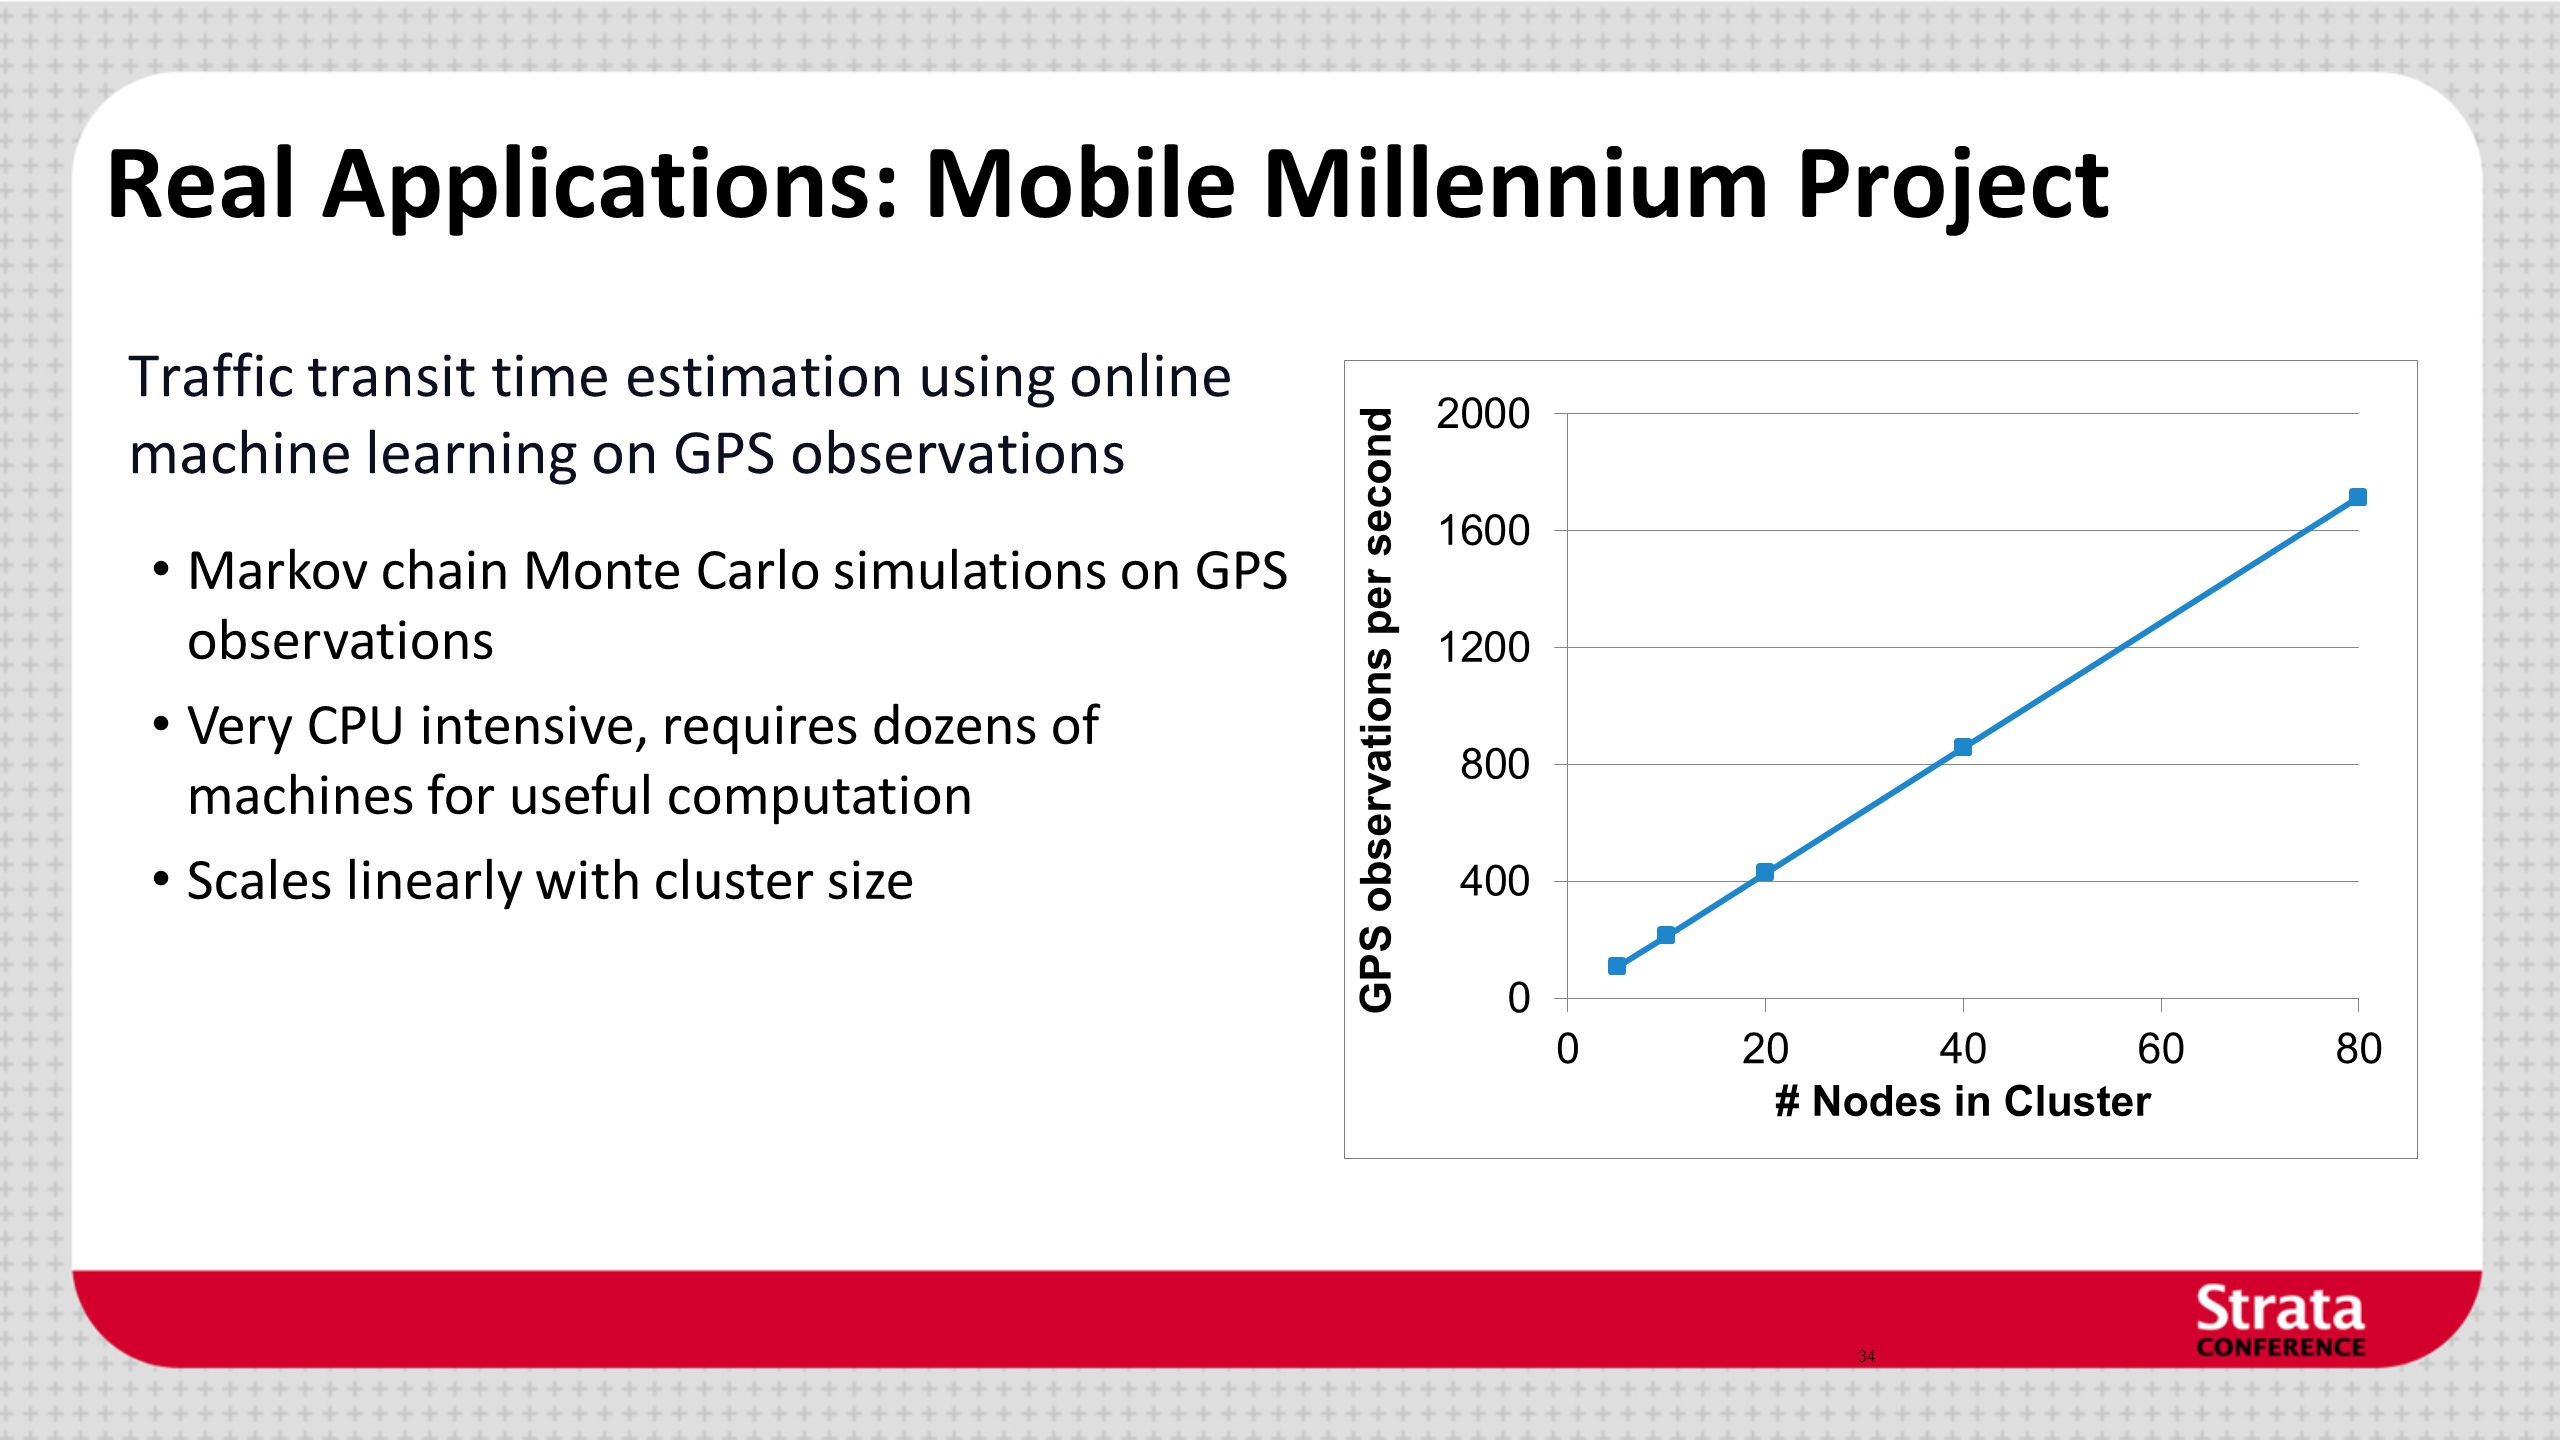 Real Applications: Mobile Millennium Project Traffic transit time estimation using online machine learning on GPS observations 34 Markov chain Monte Carlo simulations on GPS observations Very CPU intensive, requires dozens of machines for useful computation Scales linearly with cluster size